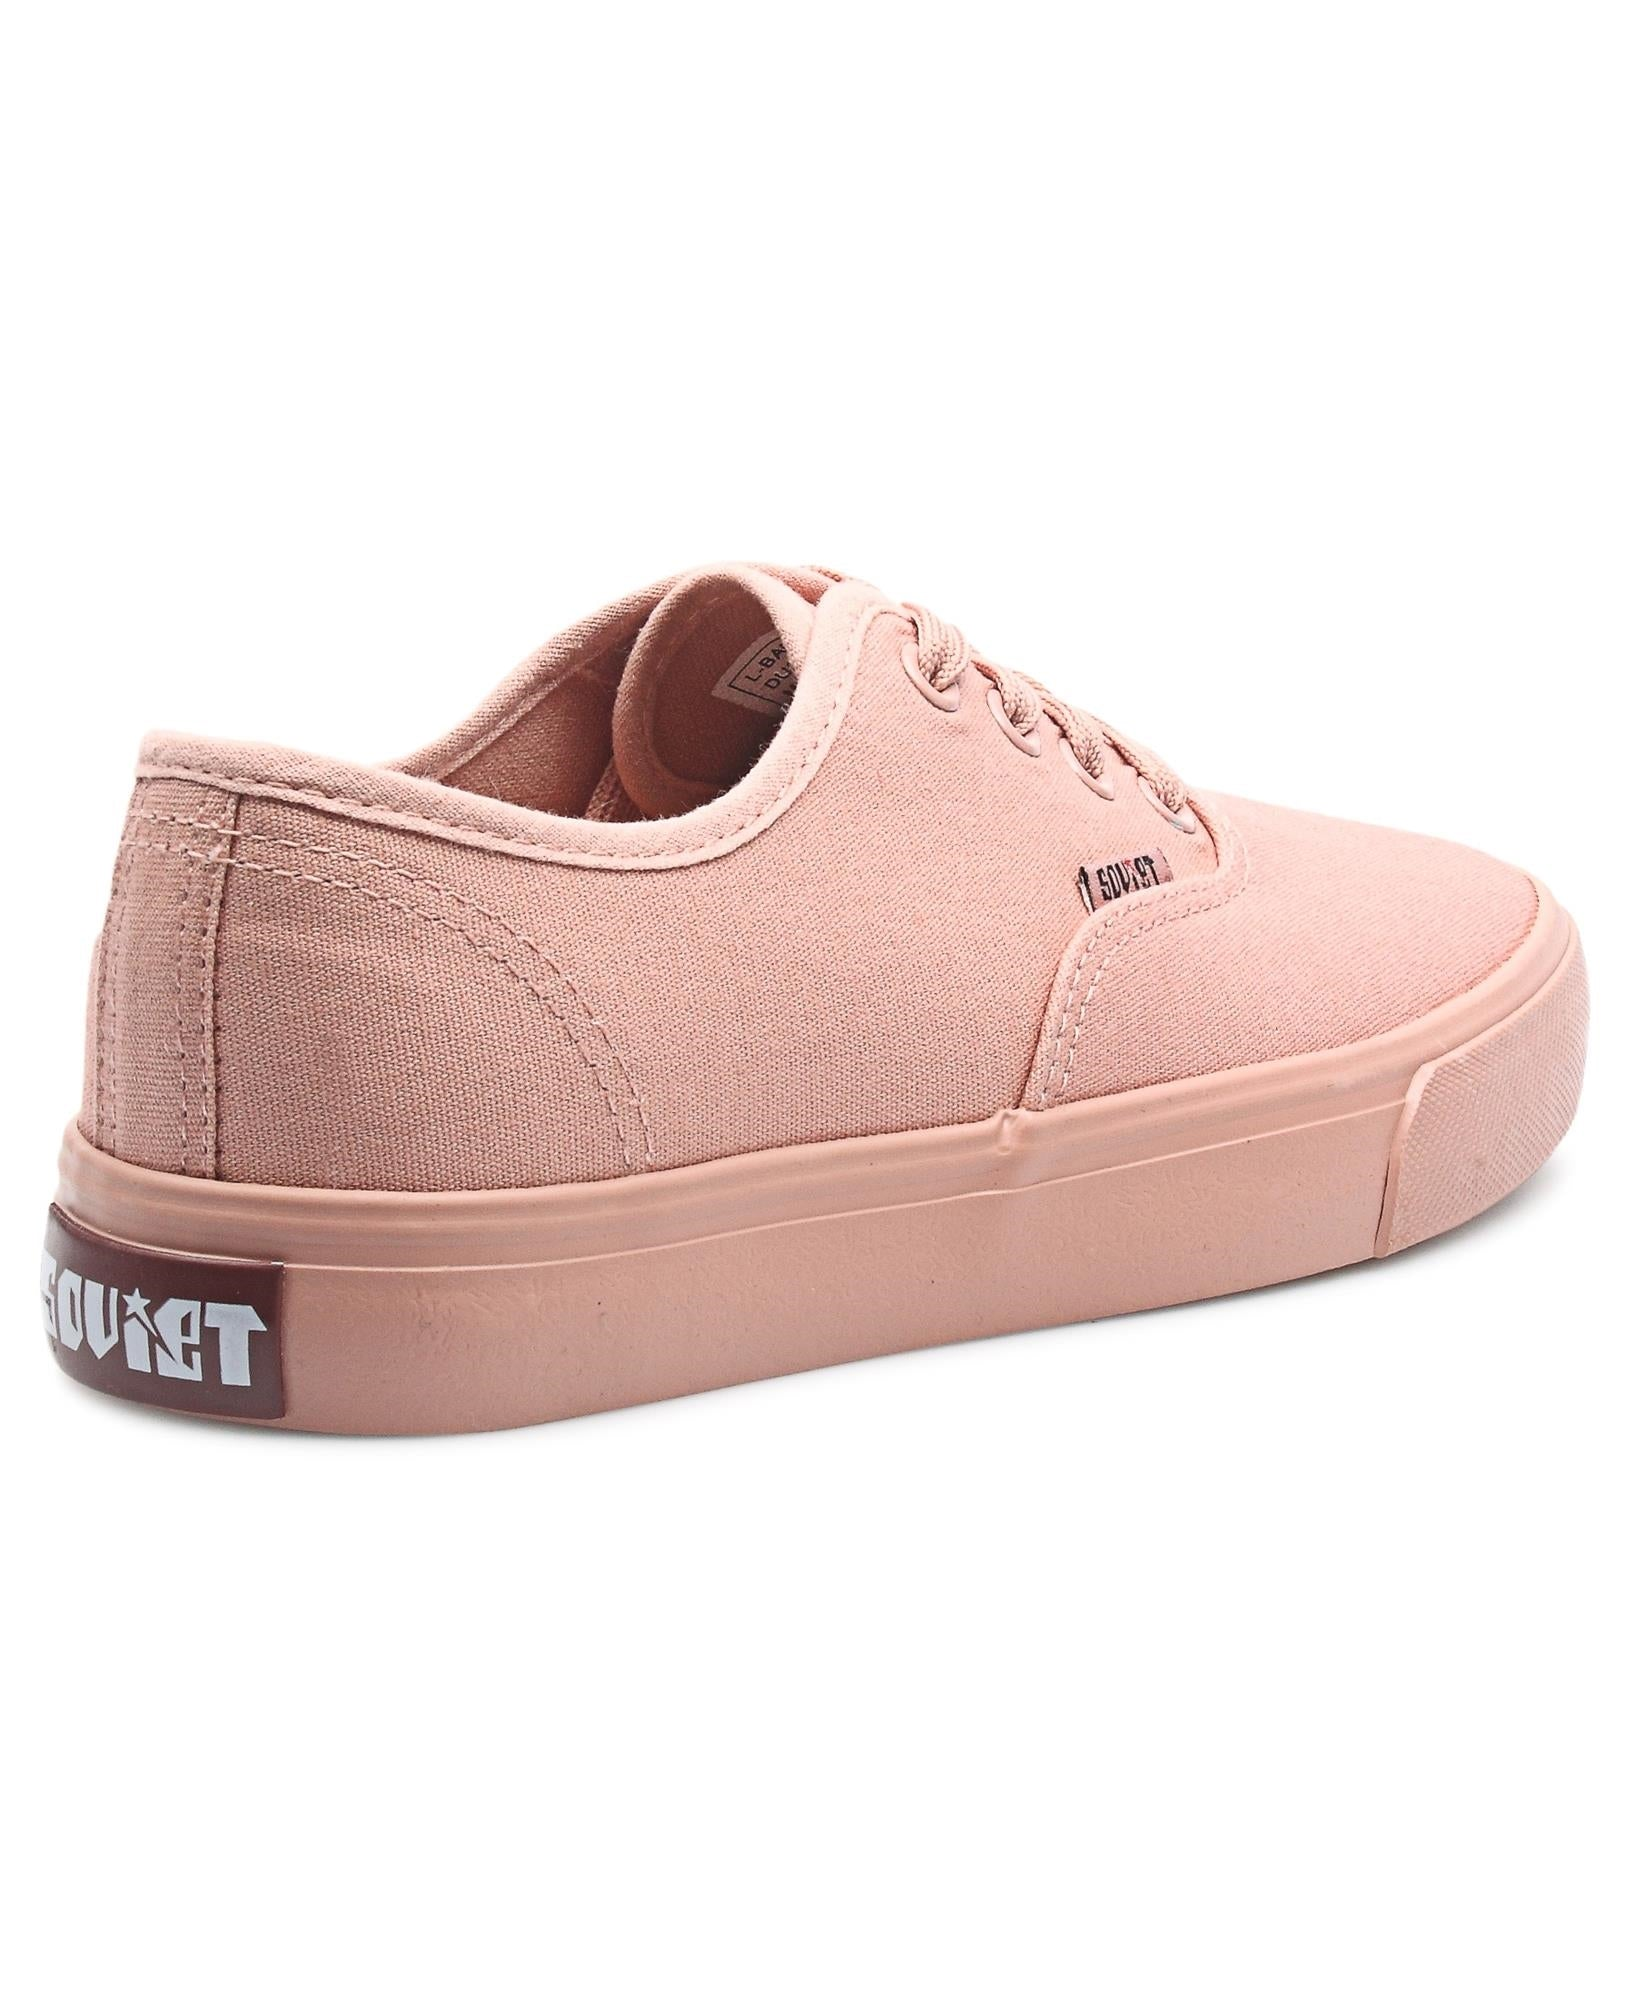 Ladies' Barca Sneakers - Pink